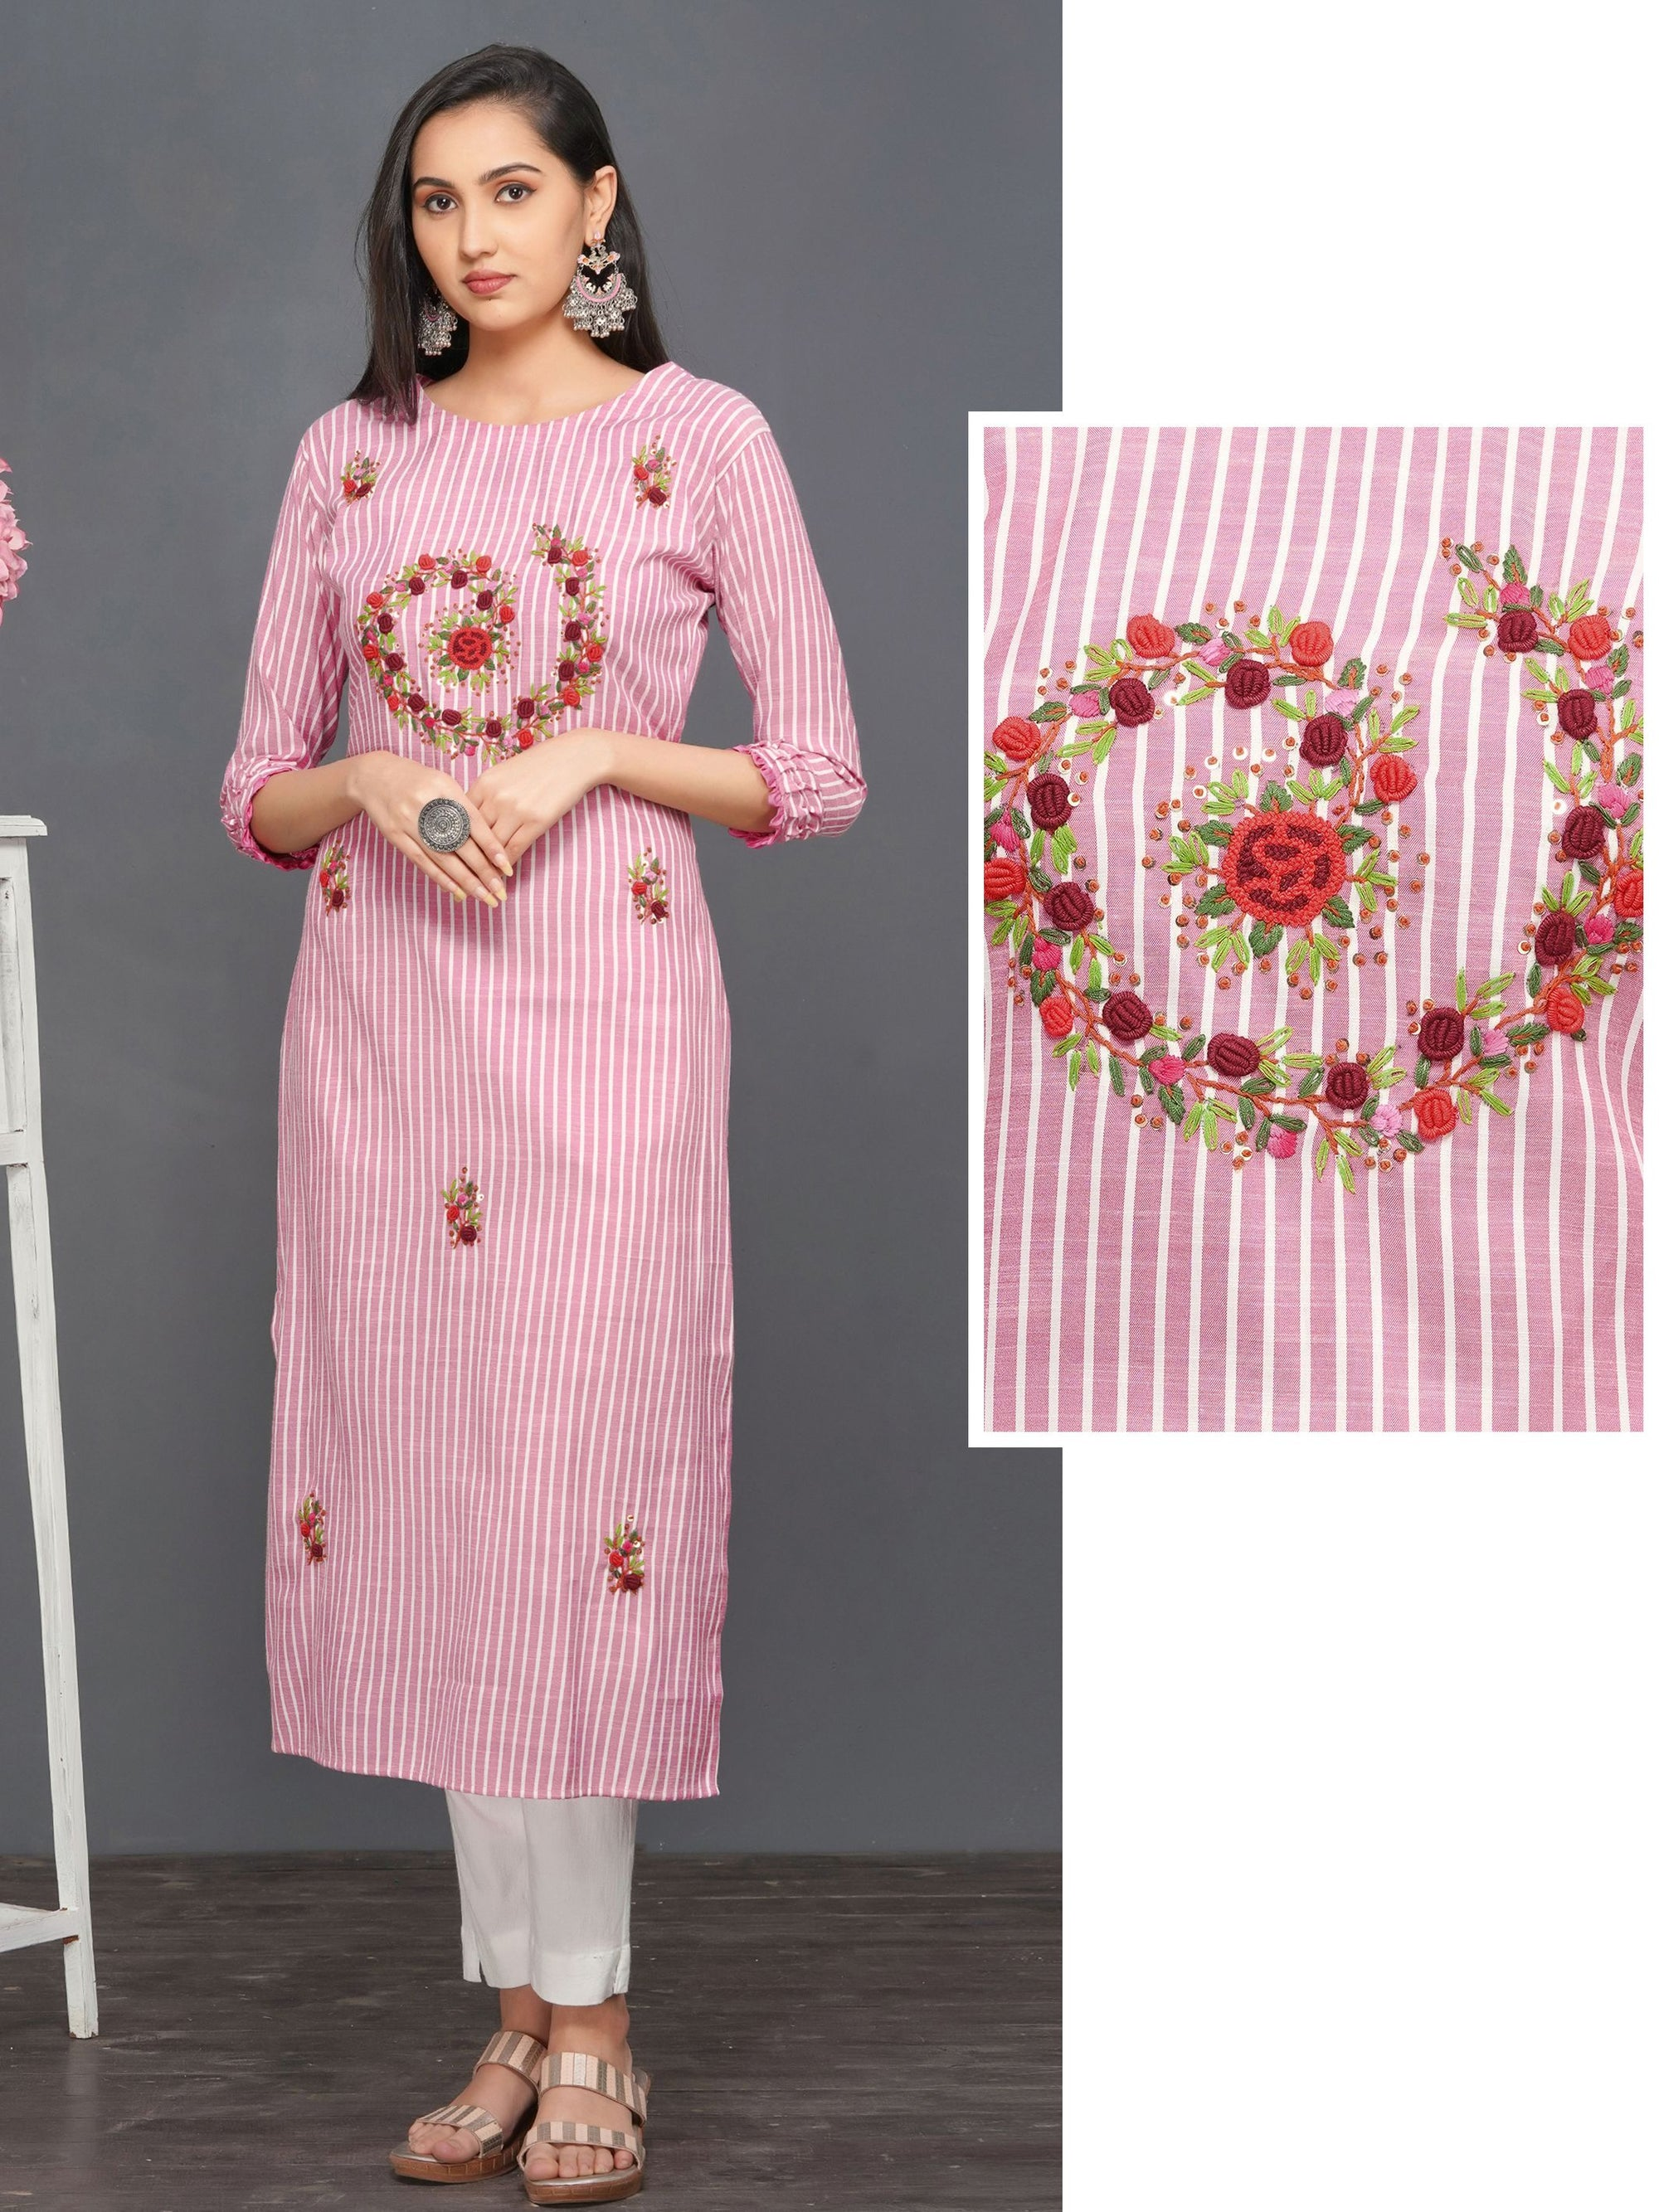 Bullion Knot Floral Embroidered Kurti – Pink